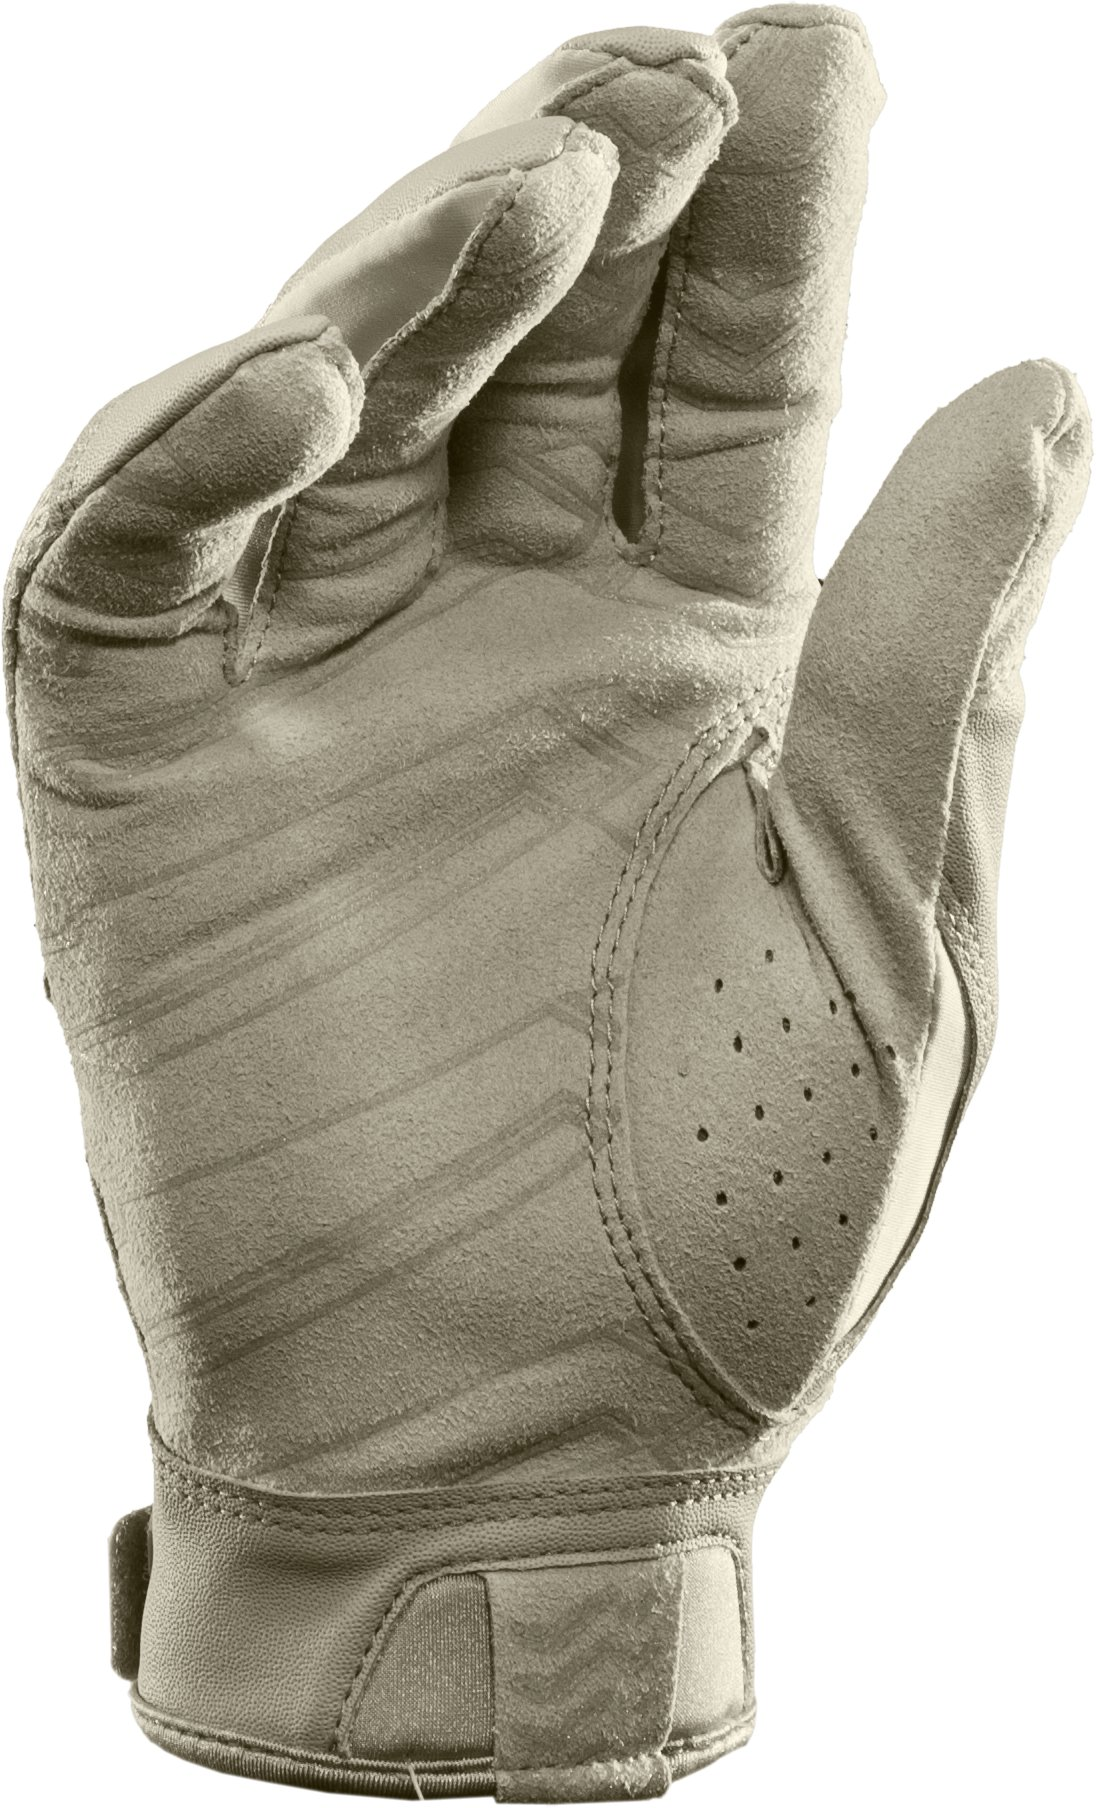 Men's Tactical Summer Blackout Glove, Desert Sand, undefined